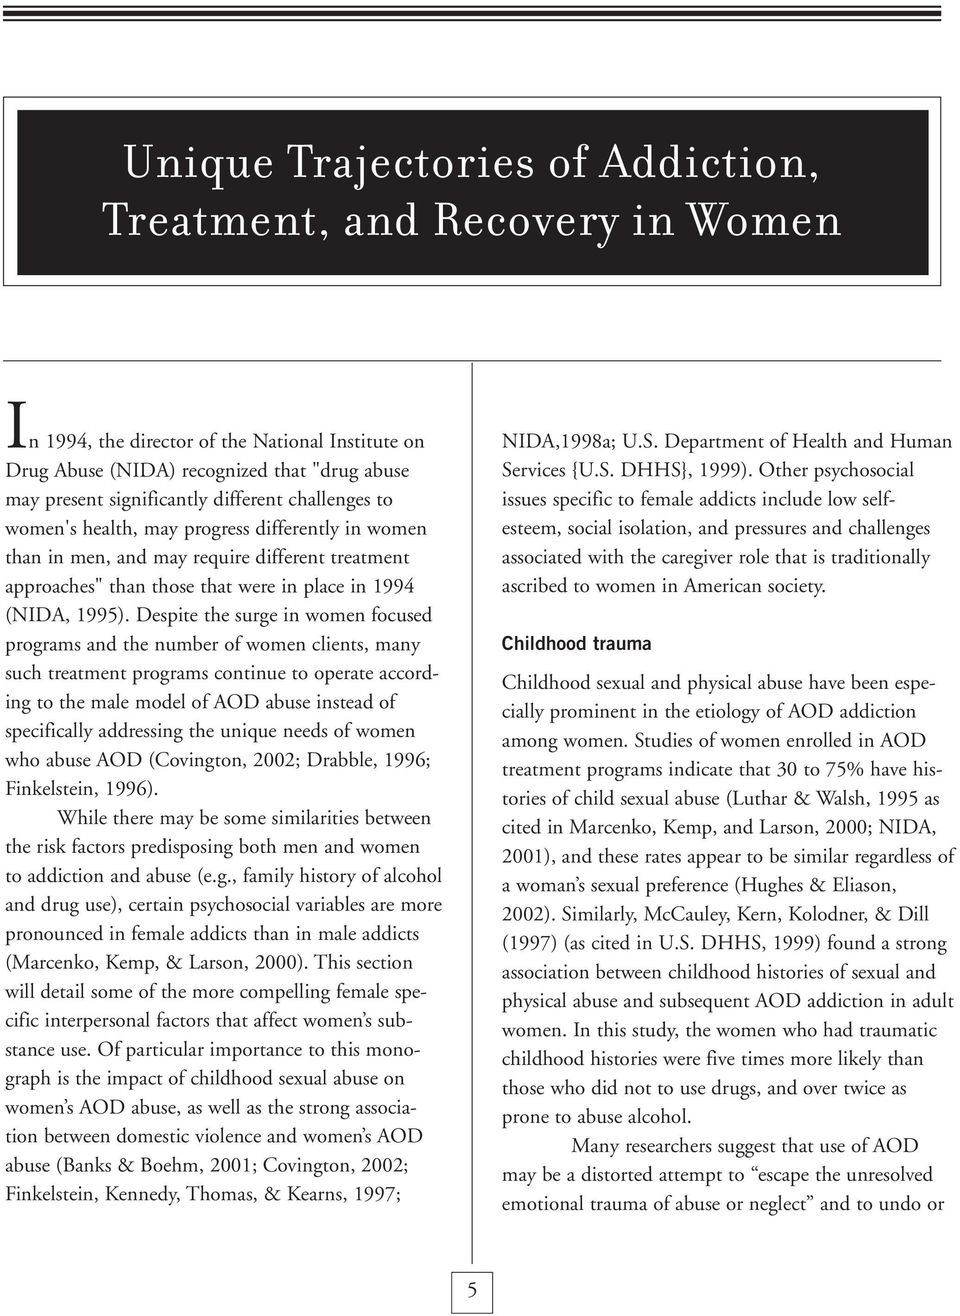 Despite the surge in women focused programs and the number of women clients, many such treatment programs continue to operate according to the male model of AOD abuse instead of specifically